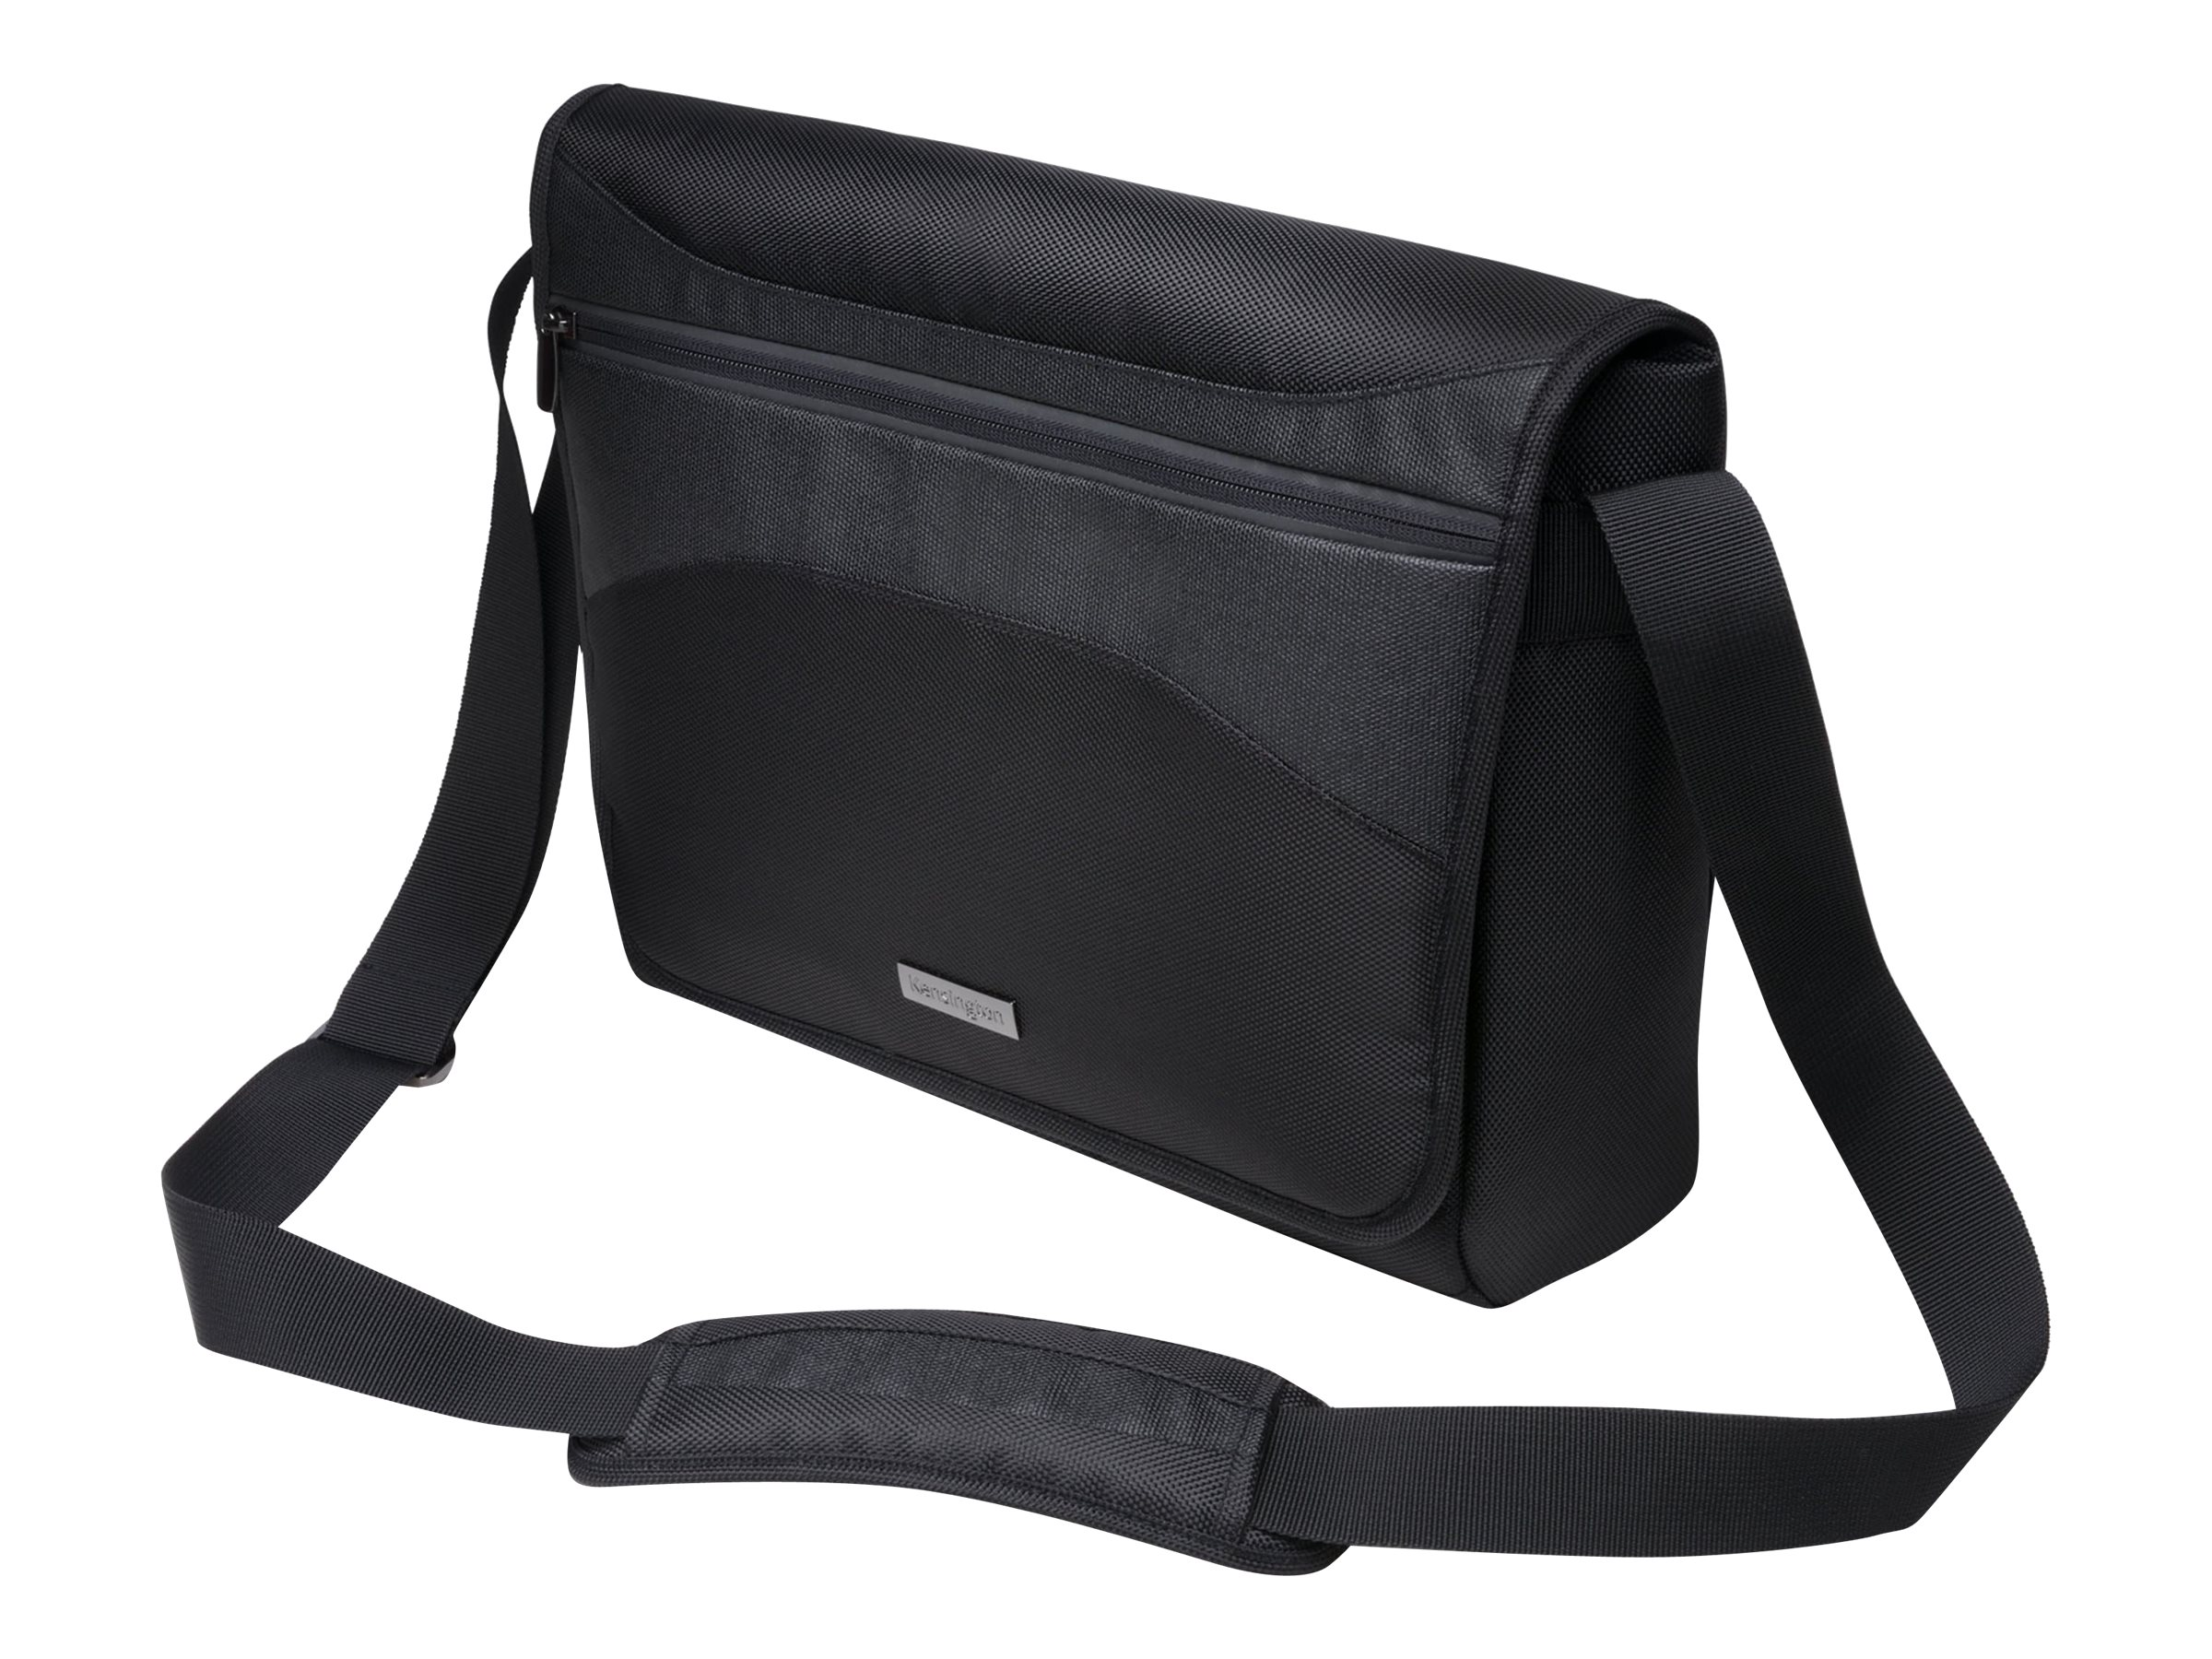 Kensington Messenger Bag for Ultrabook 14 w  Handles & Strap, Black